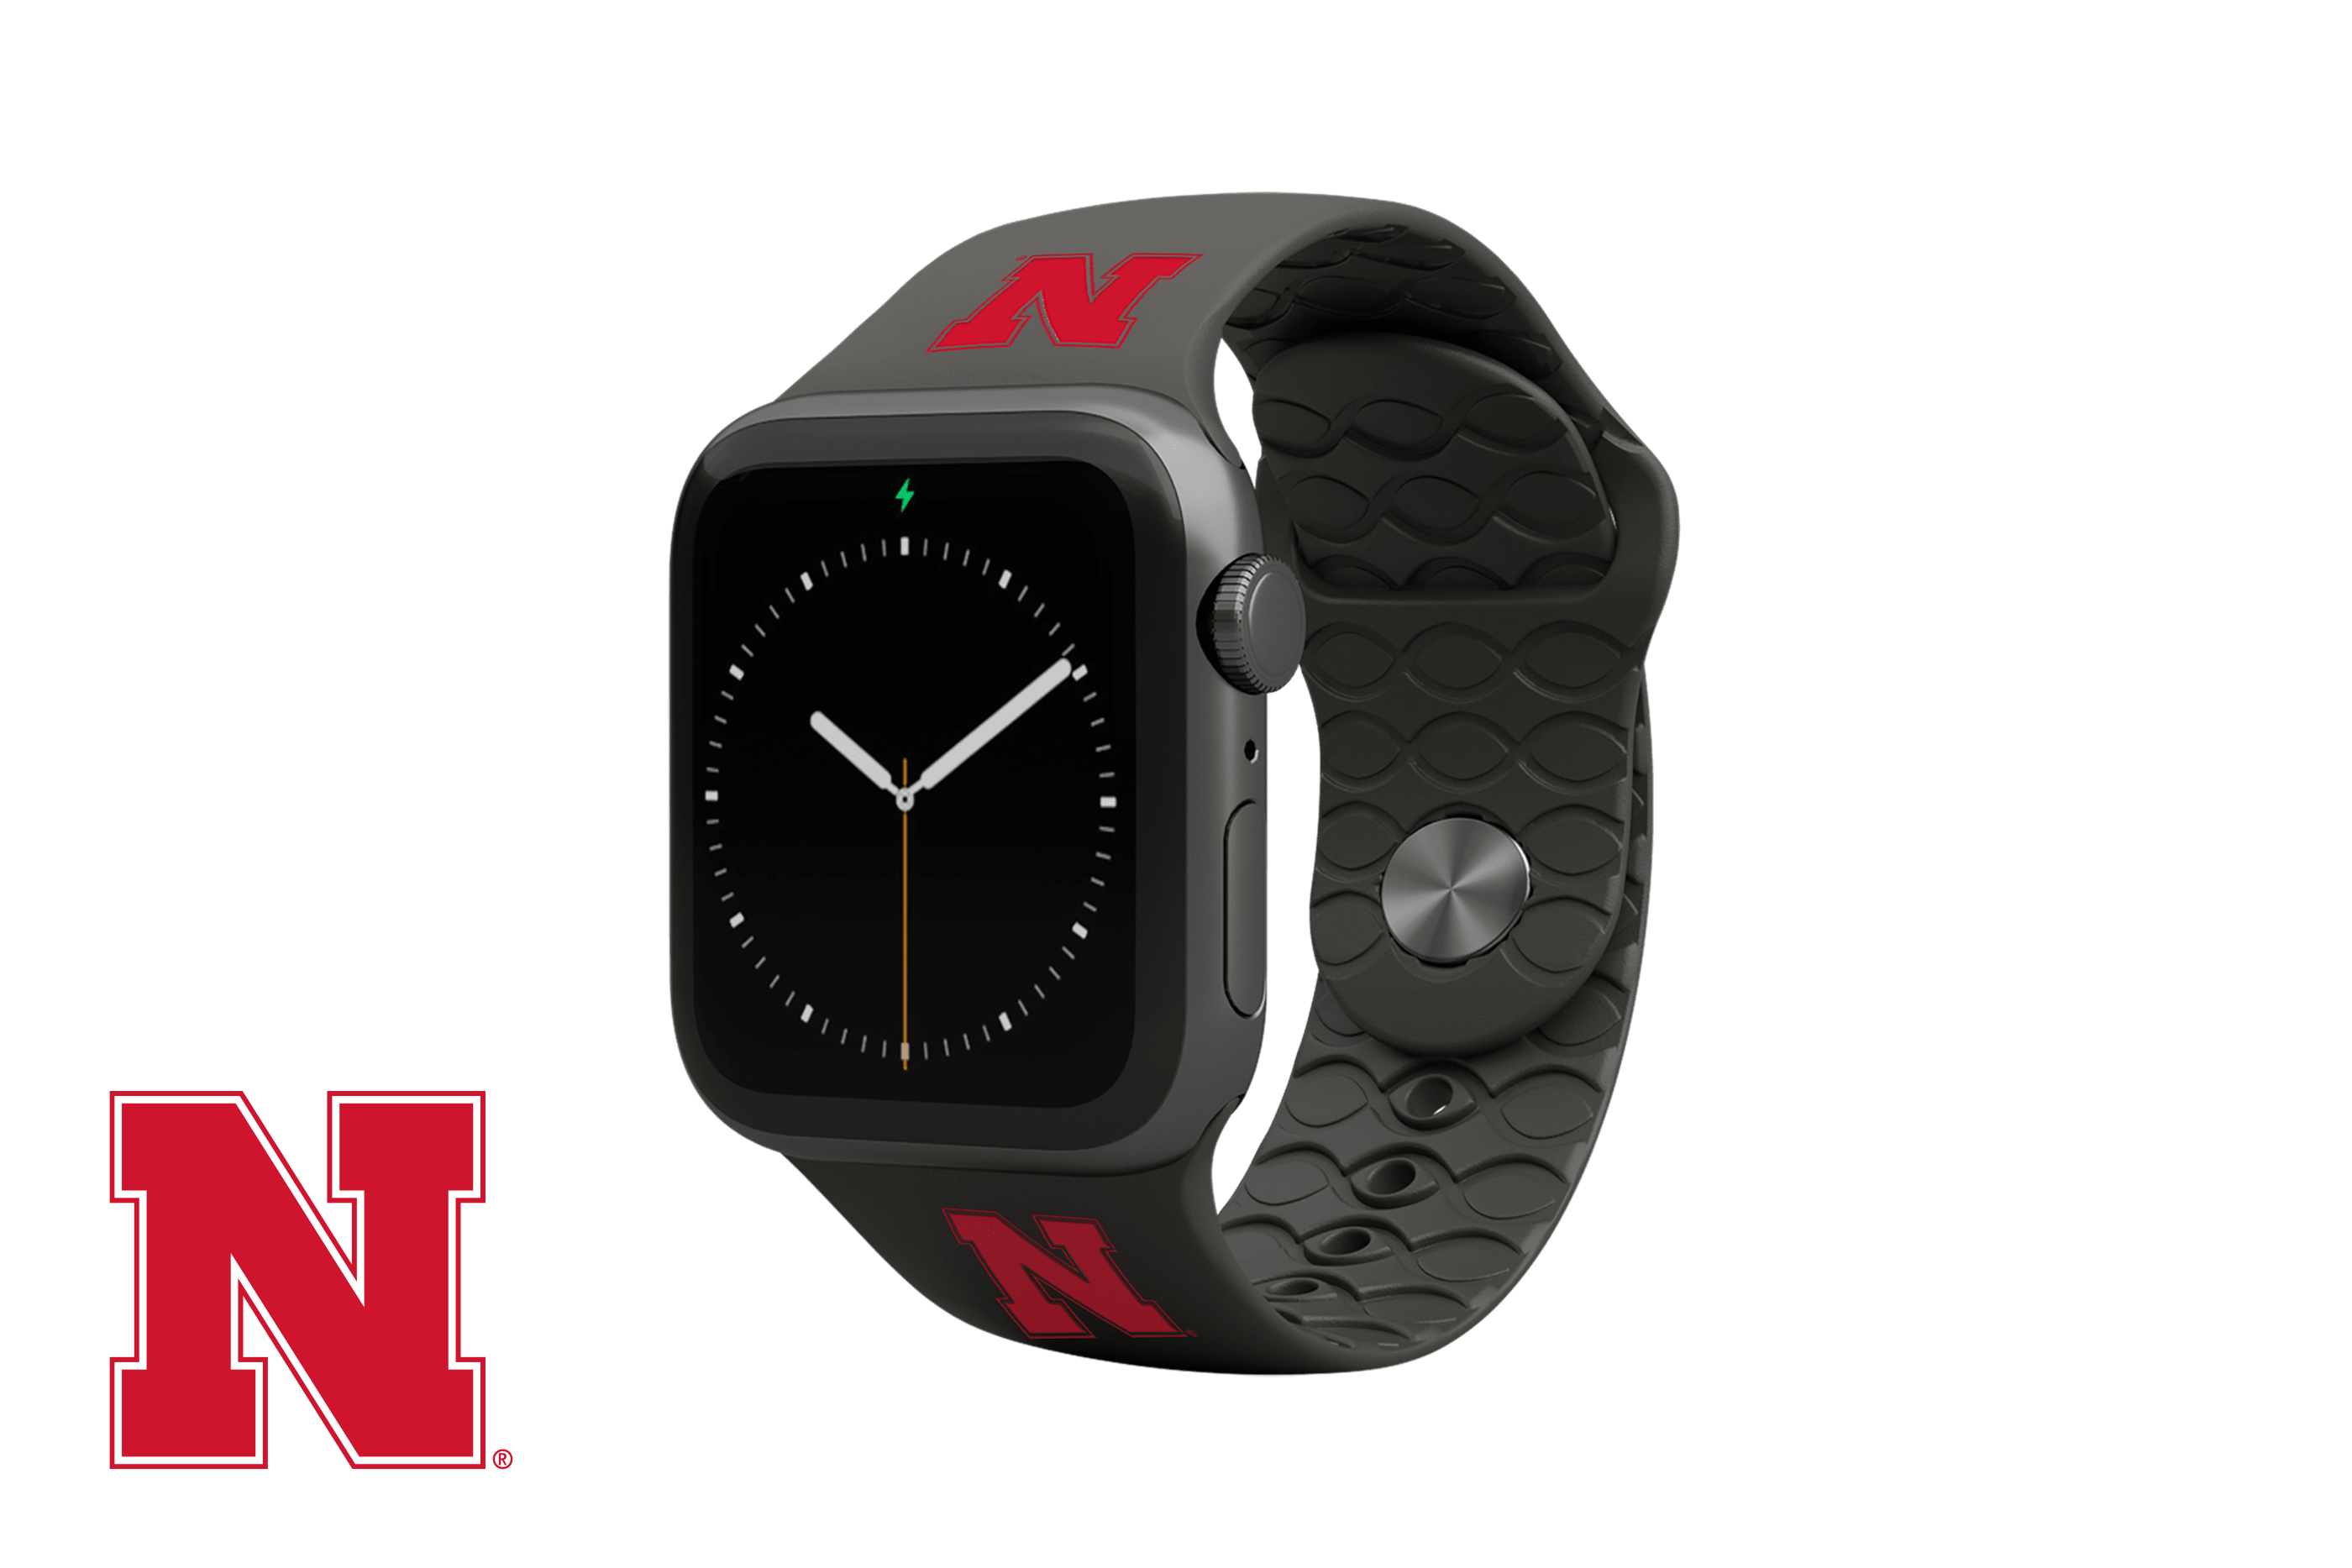 Apple Watch Band College Nebraska Black with gray hardware viewed front on